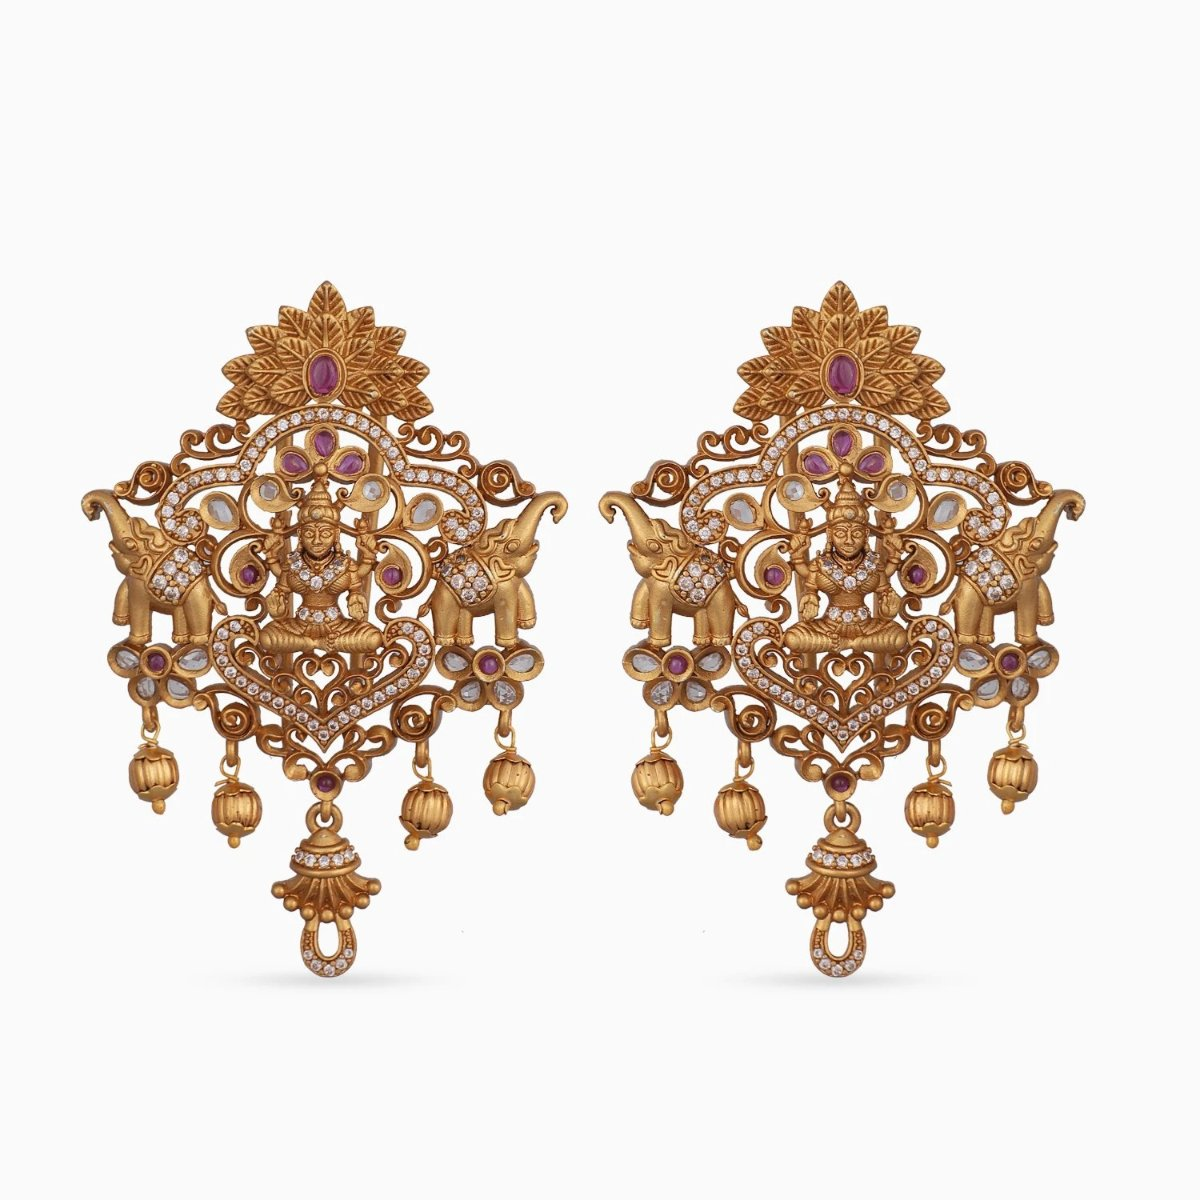 Bhumi Antique Hair Brooch